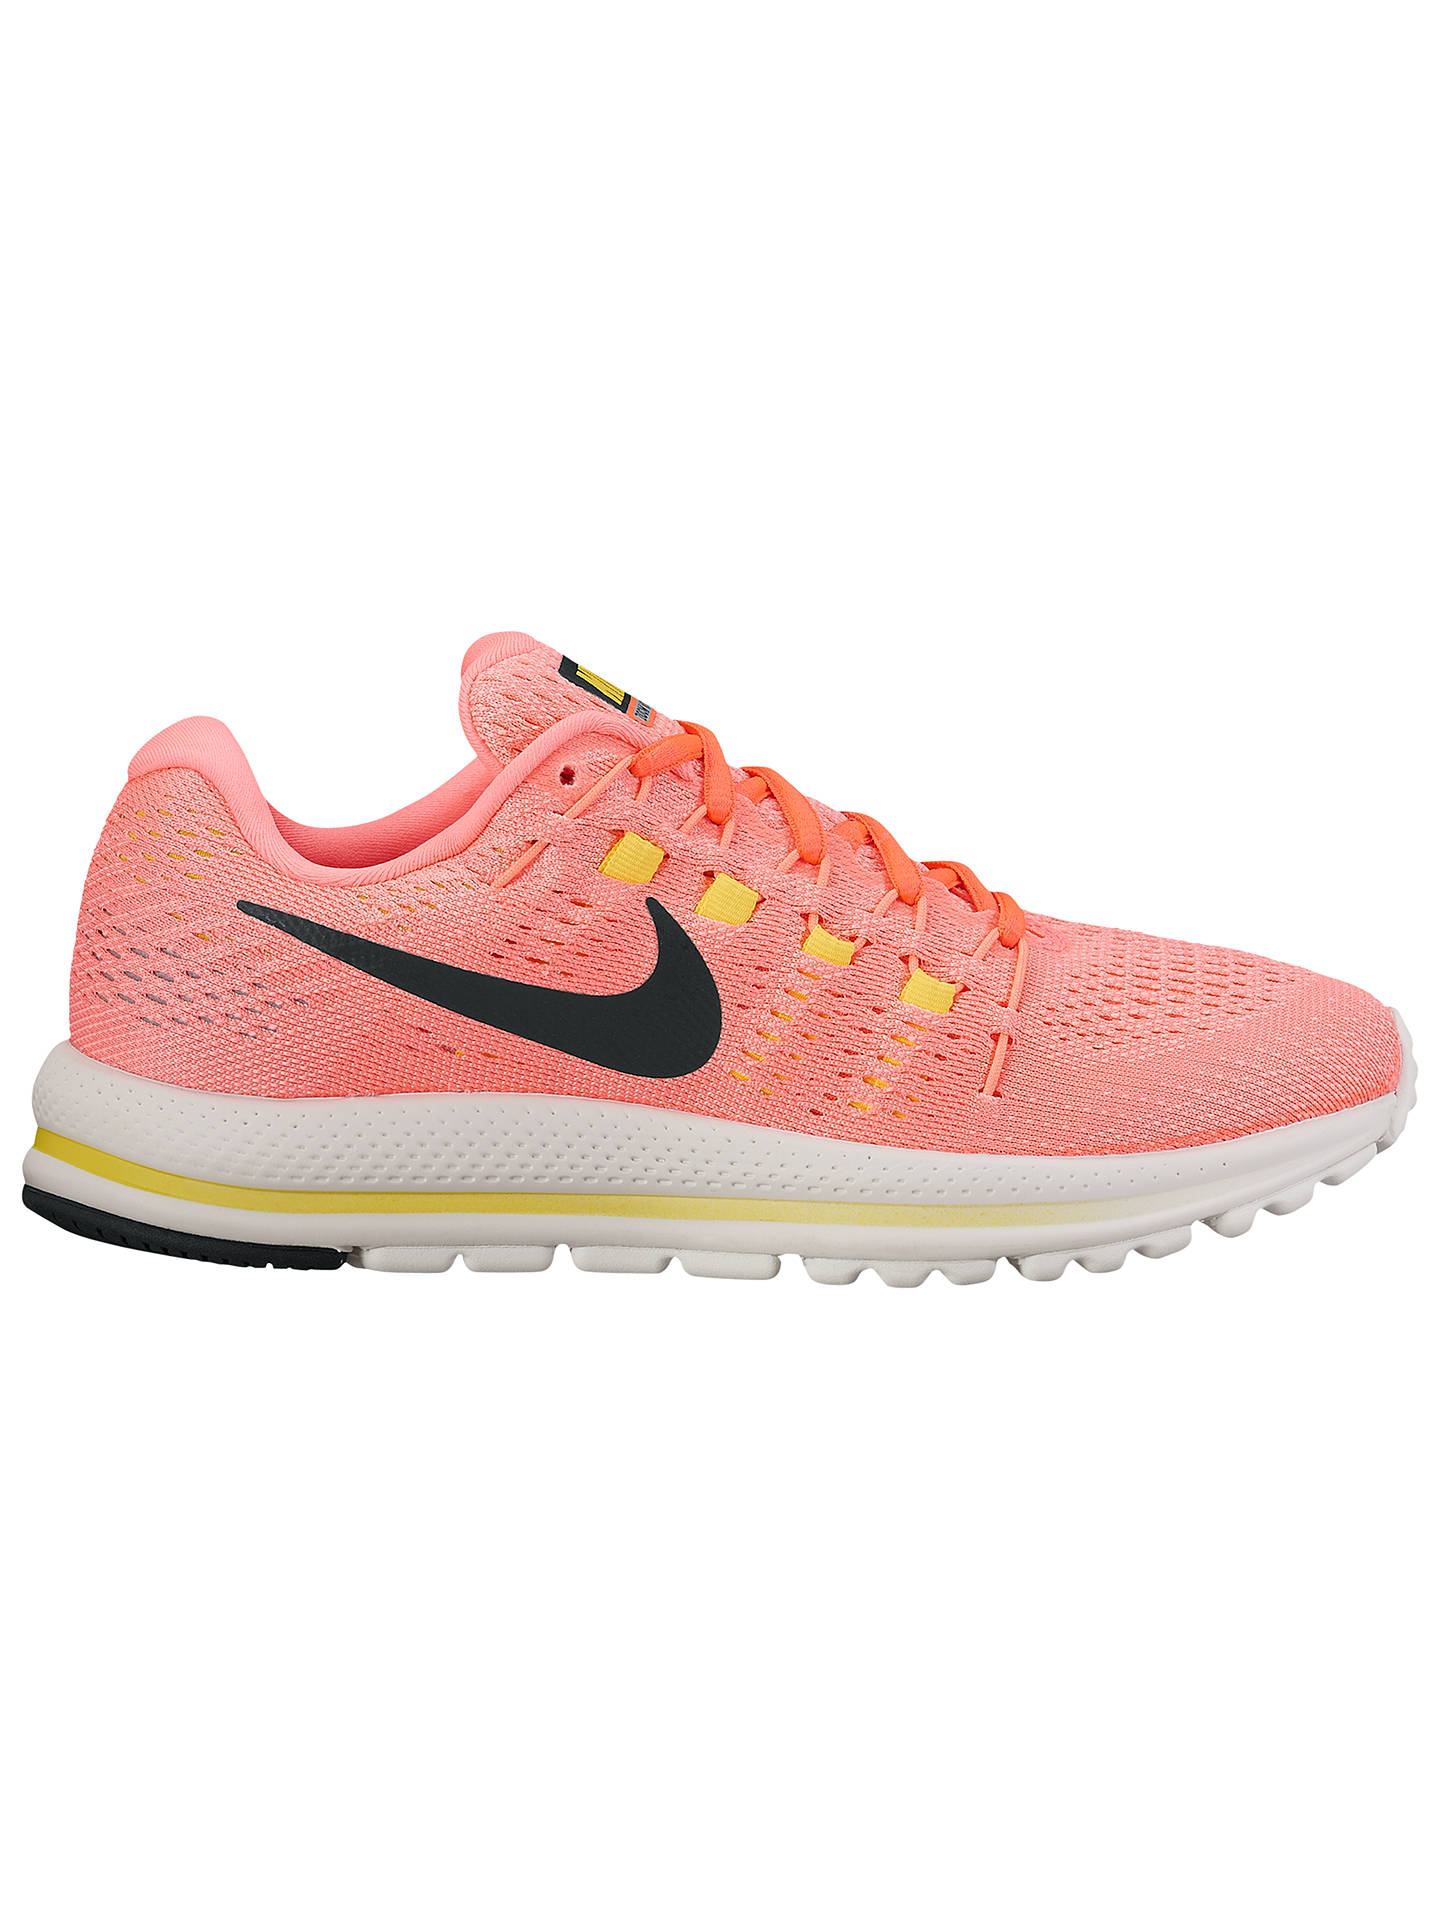 42b9646e91f6 coupon code nike air zoom pegasus 35 mens running shoe 3664d 70d24  uk  buynike air zoom vomero 12 womens running shoes hot punch lava glow 4 98dd2  63974